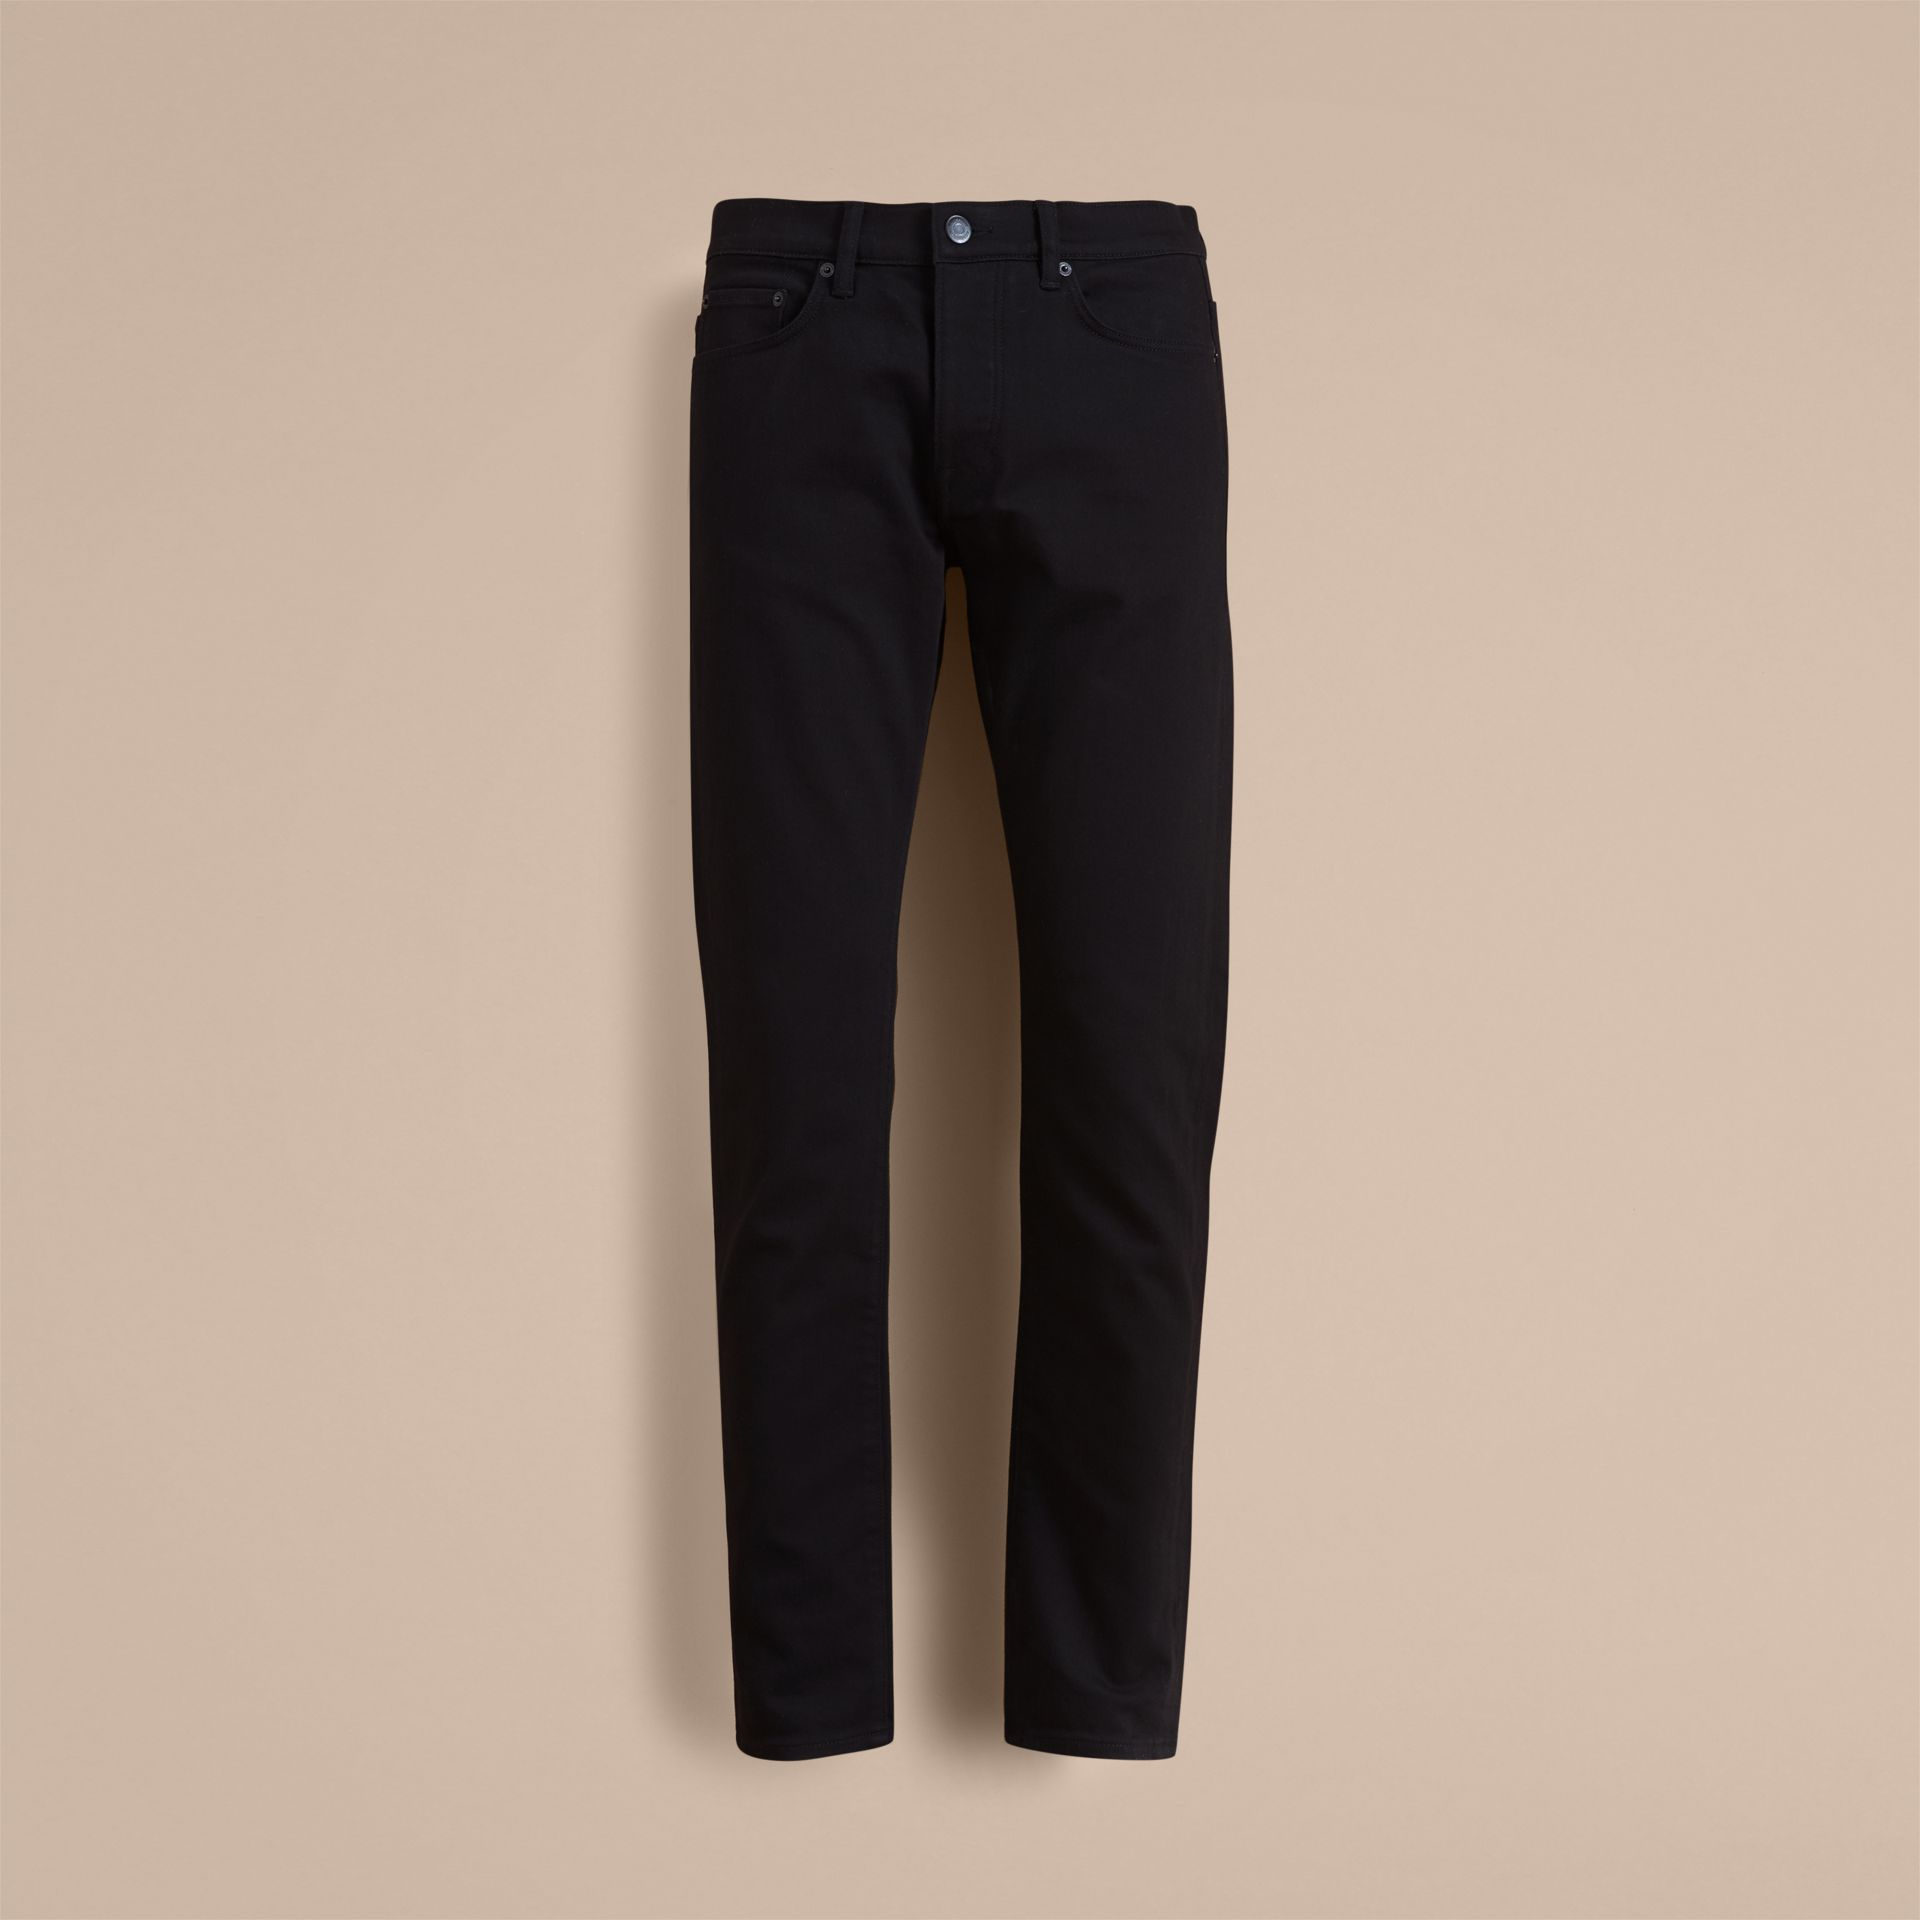 Relaxed Fit Stretch Jeans in Black - Men | Burberry - gallery image 4